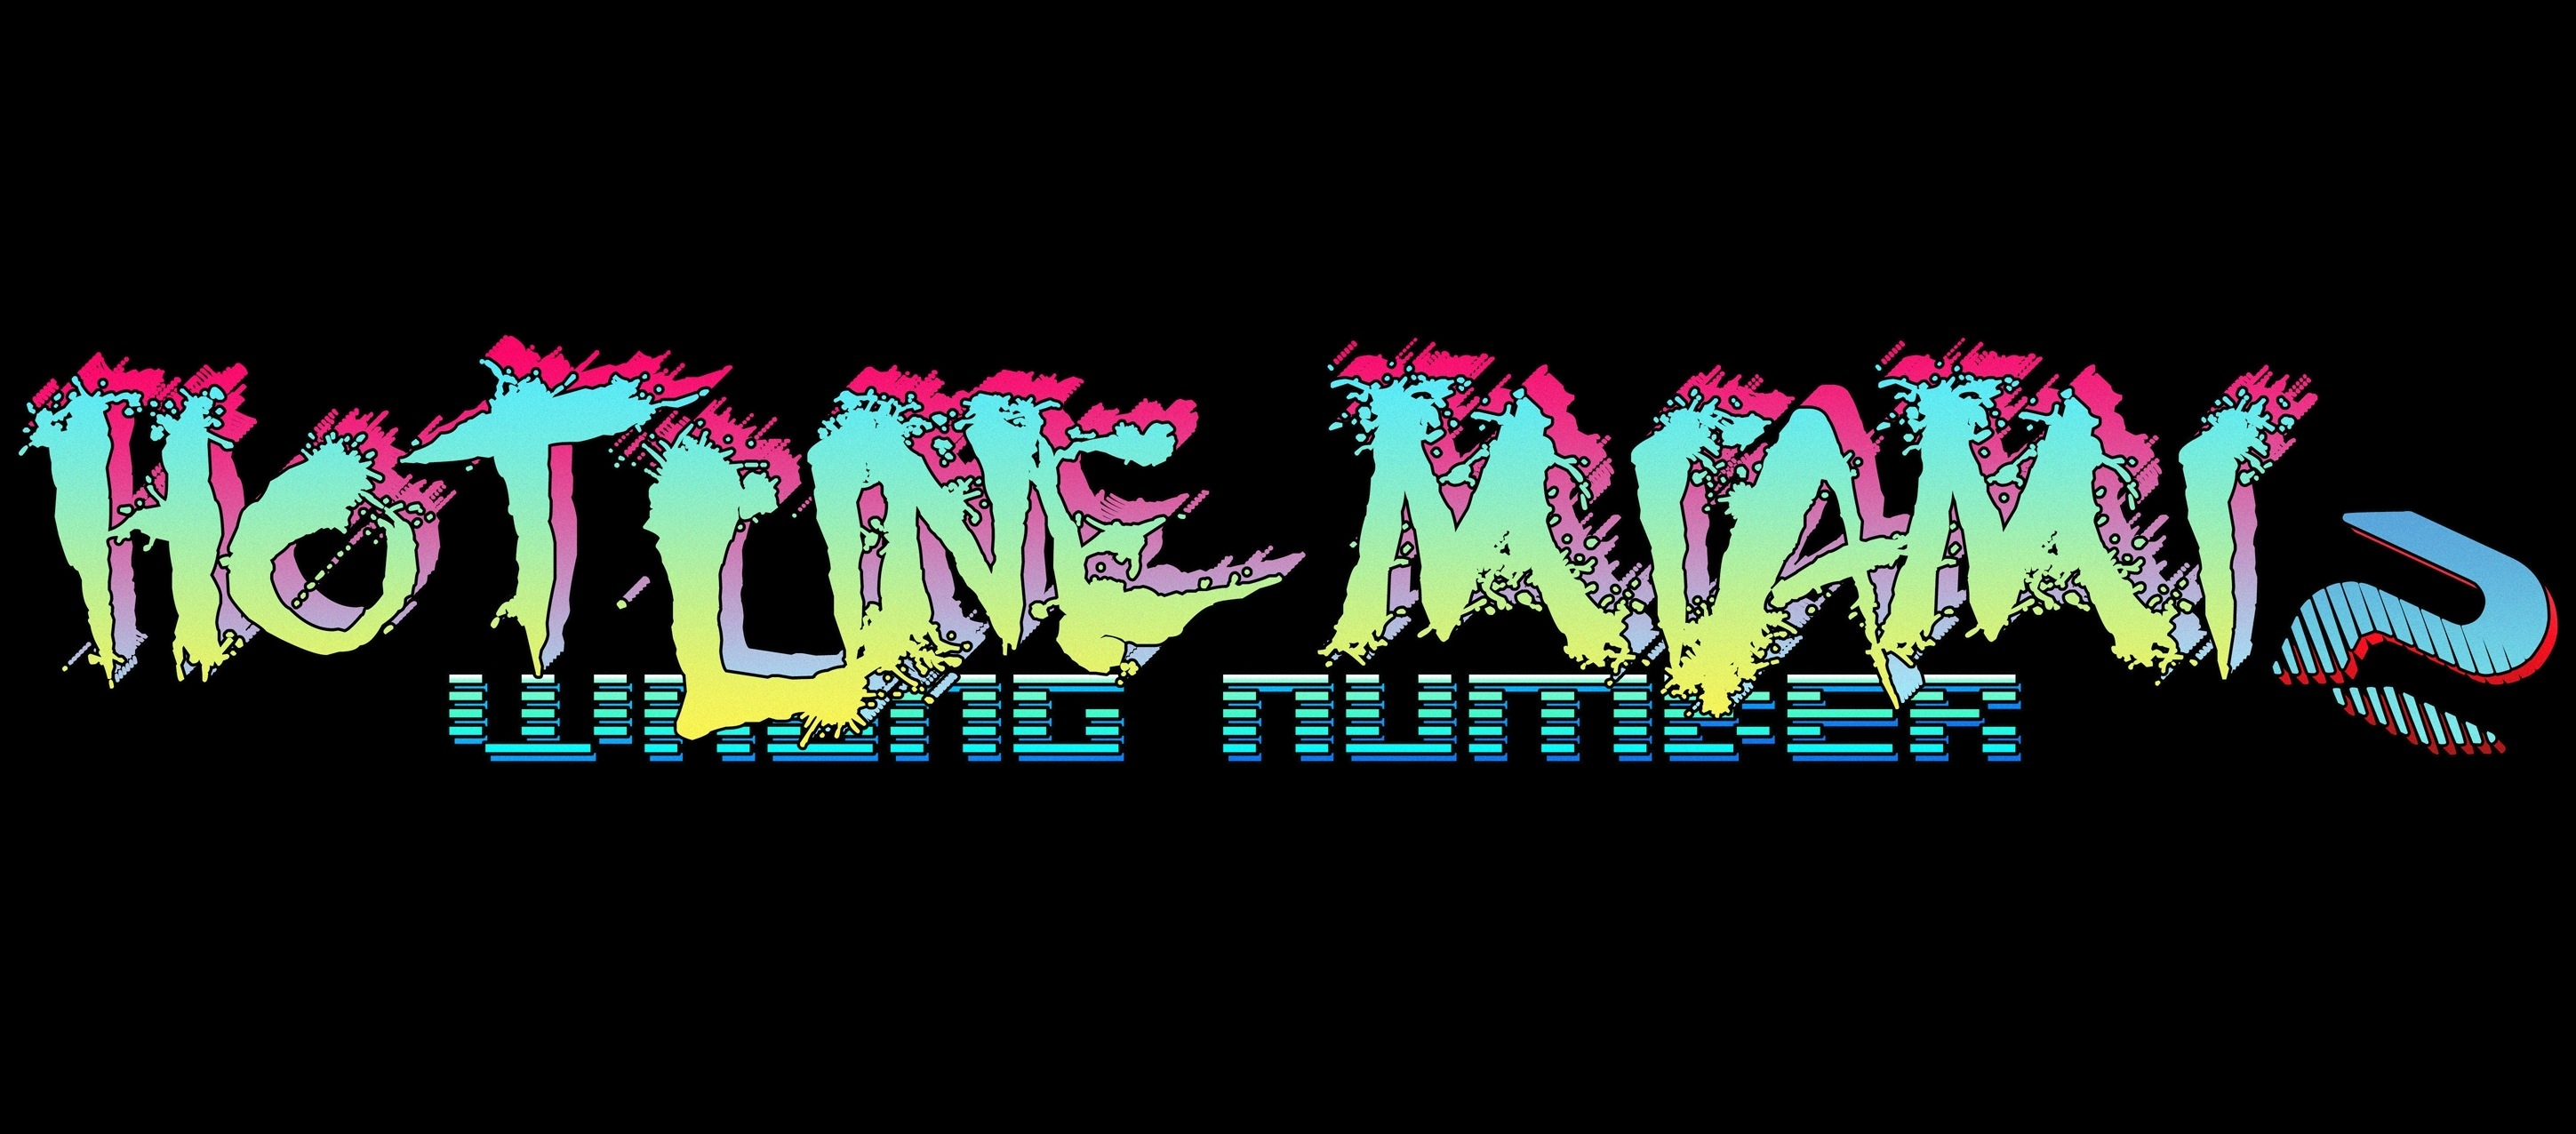 Hotline Miami 2 Refused Classification In Australia, Effectively Banning It